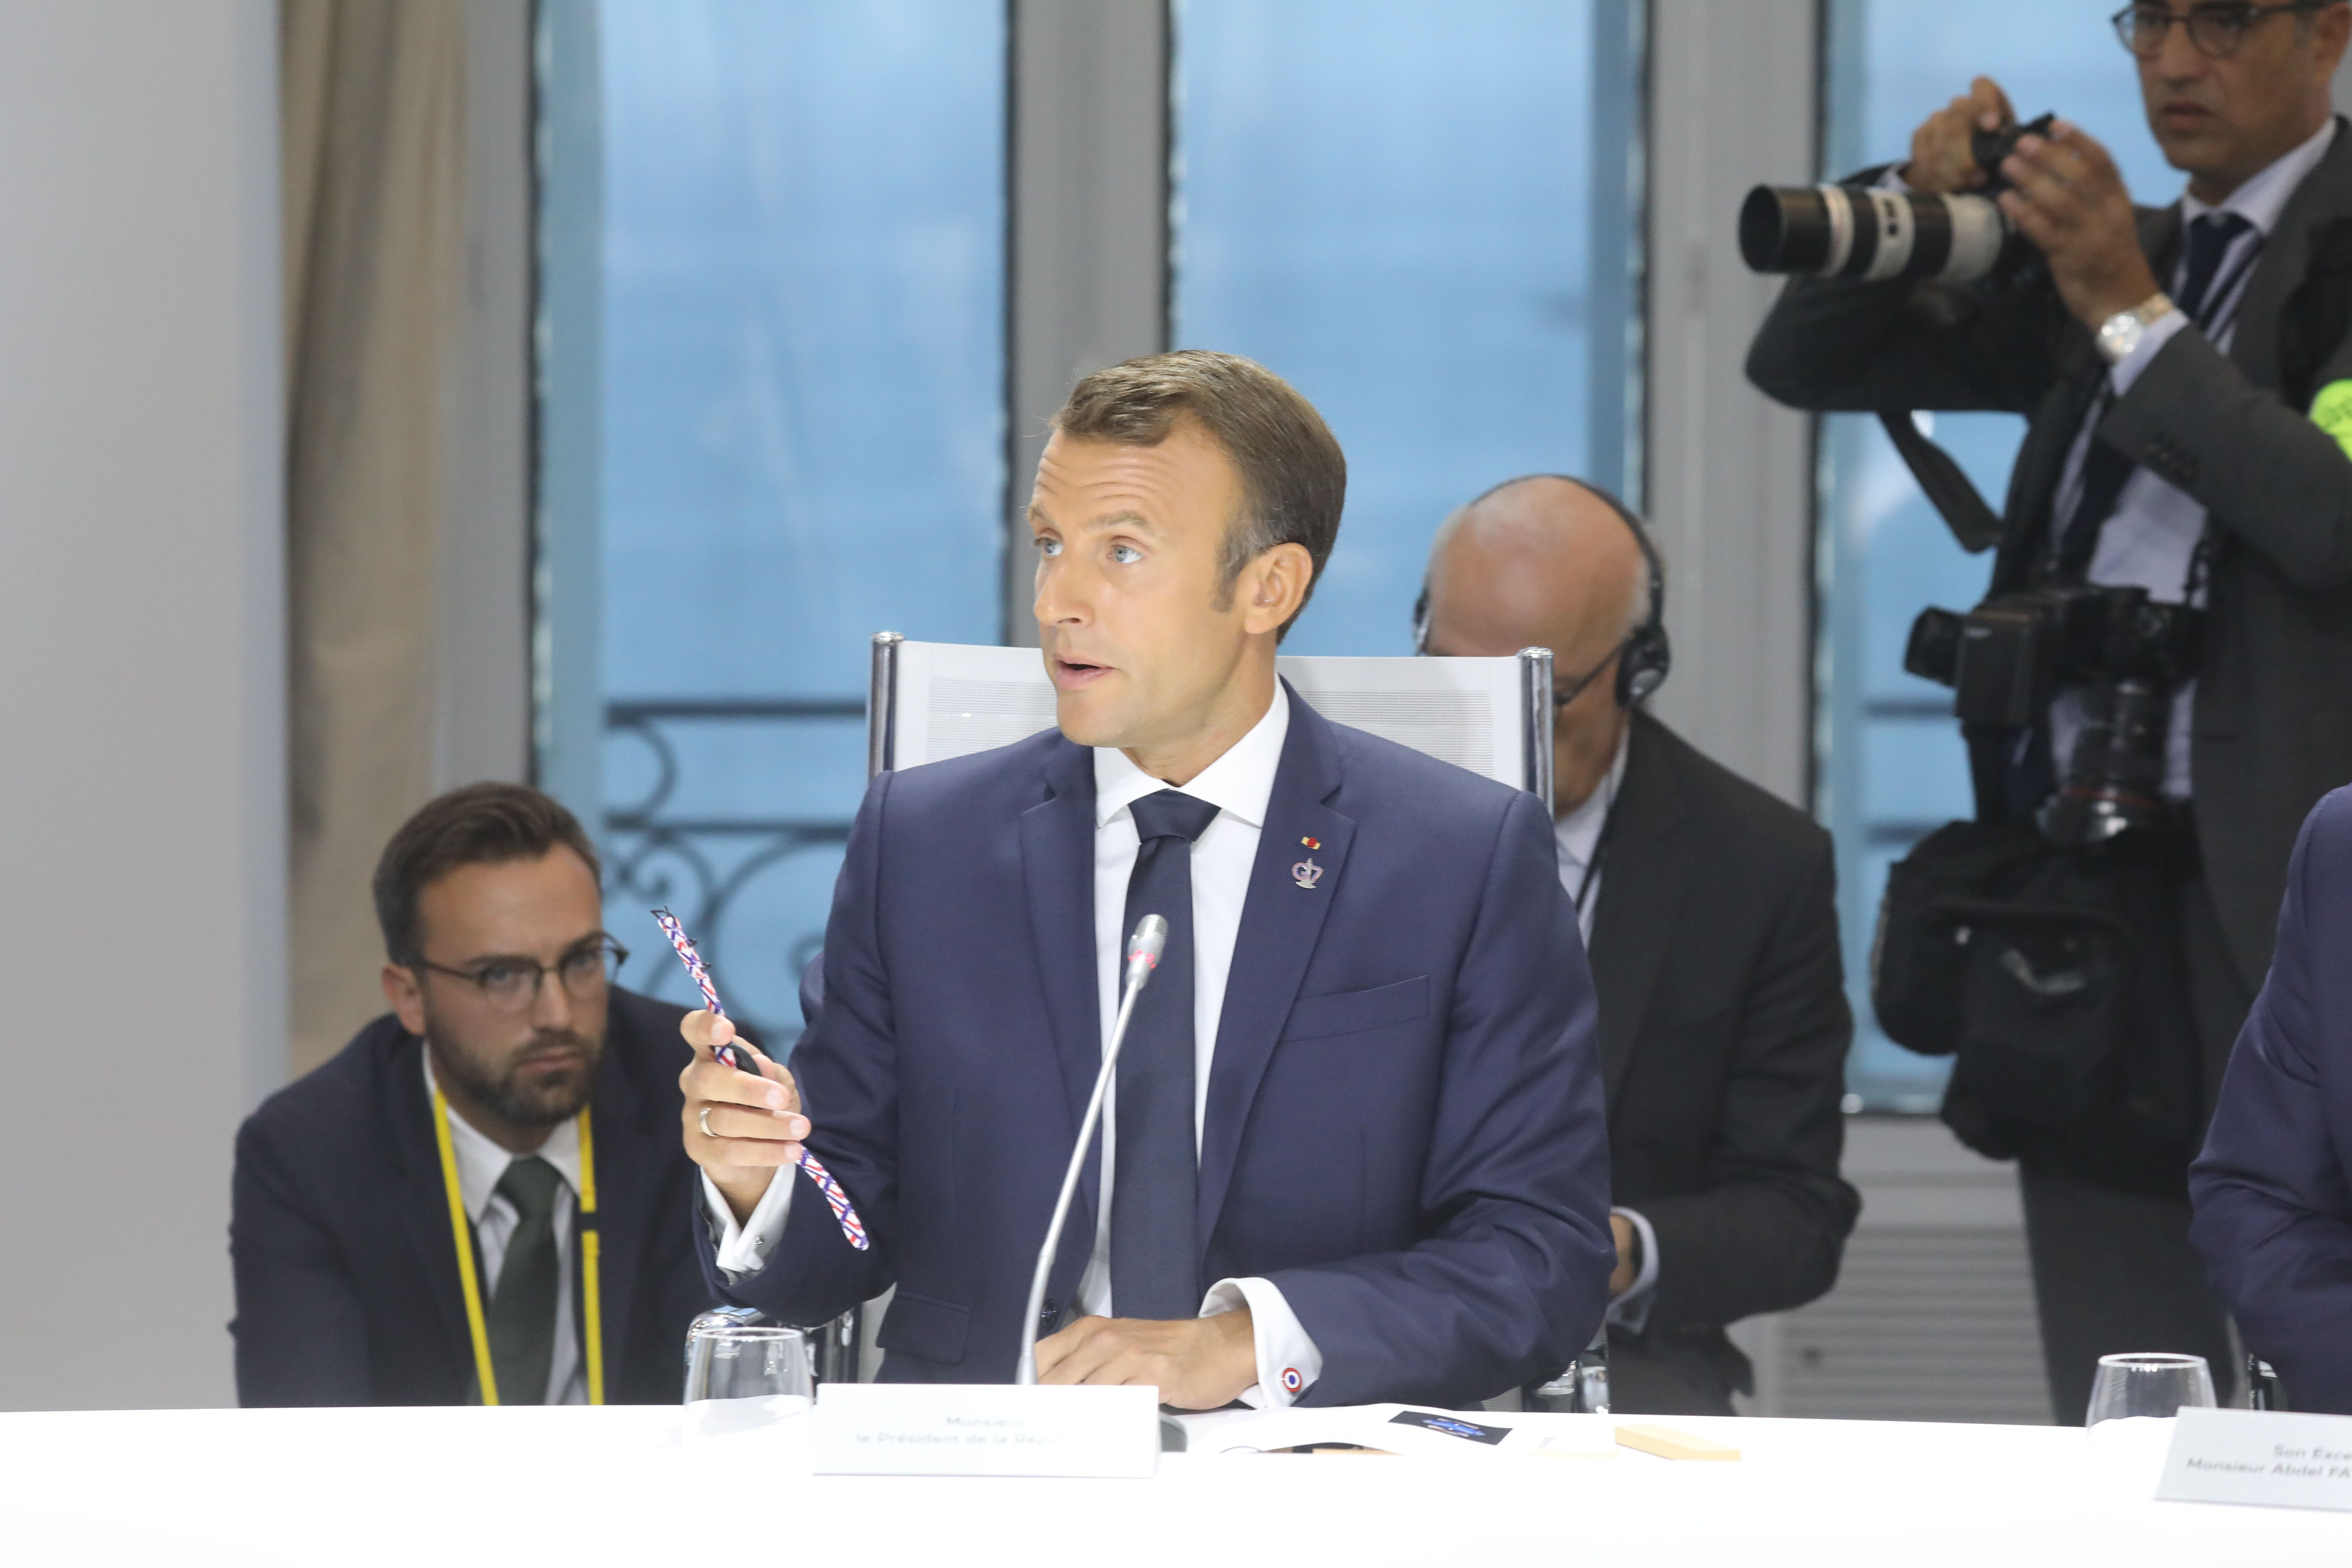 Macron shows off the watch made from recycled plastic.